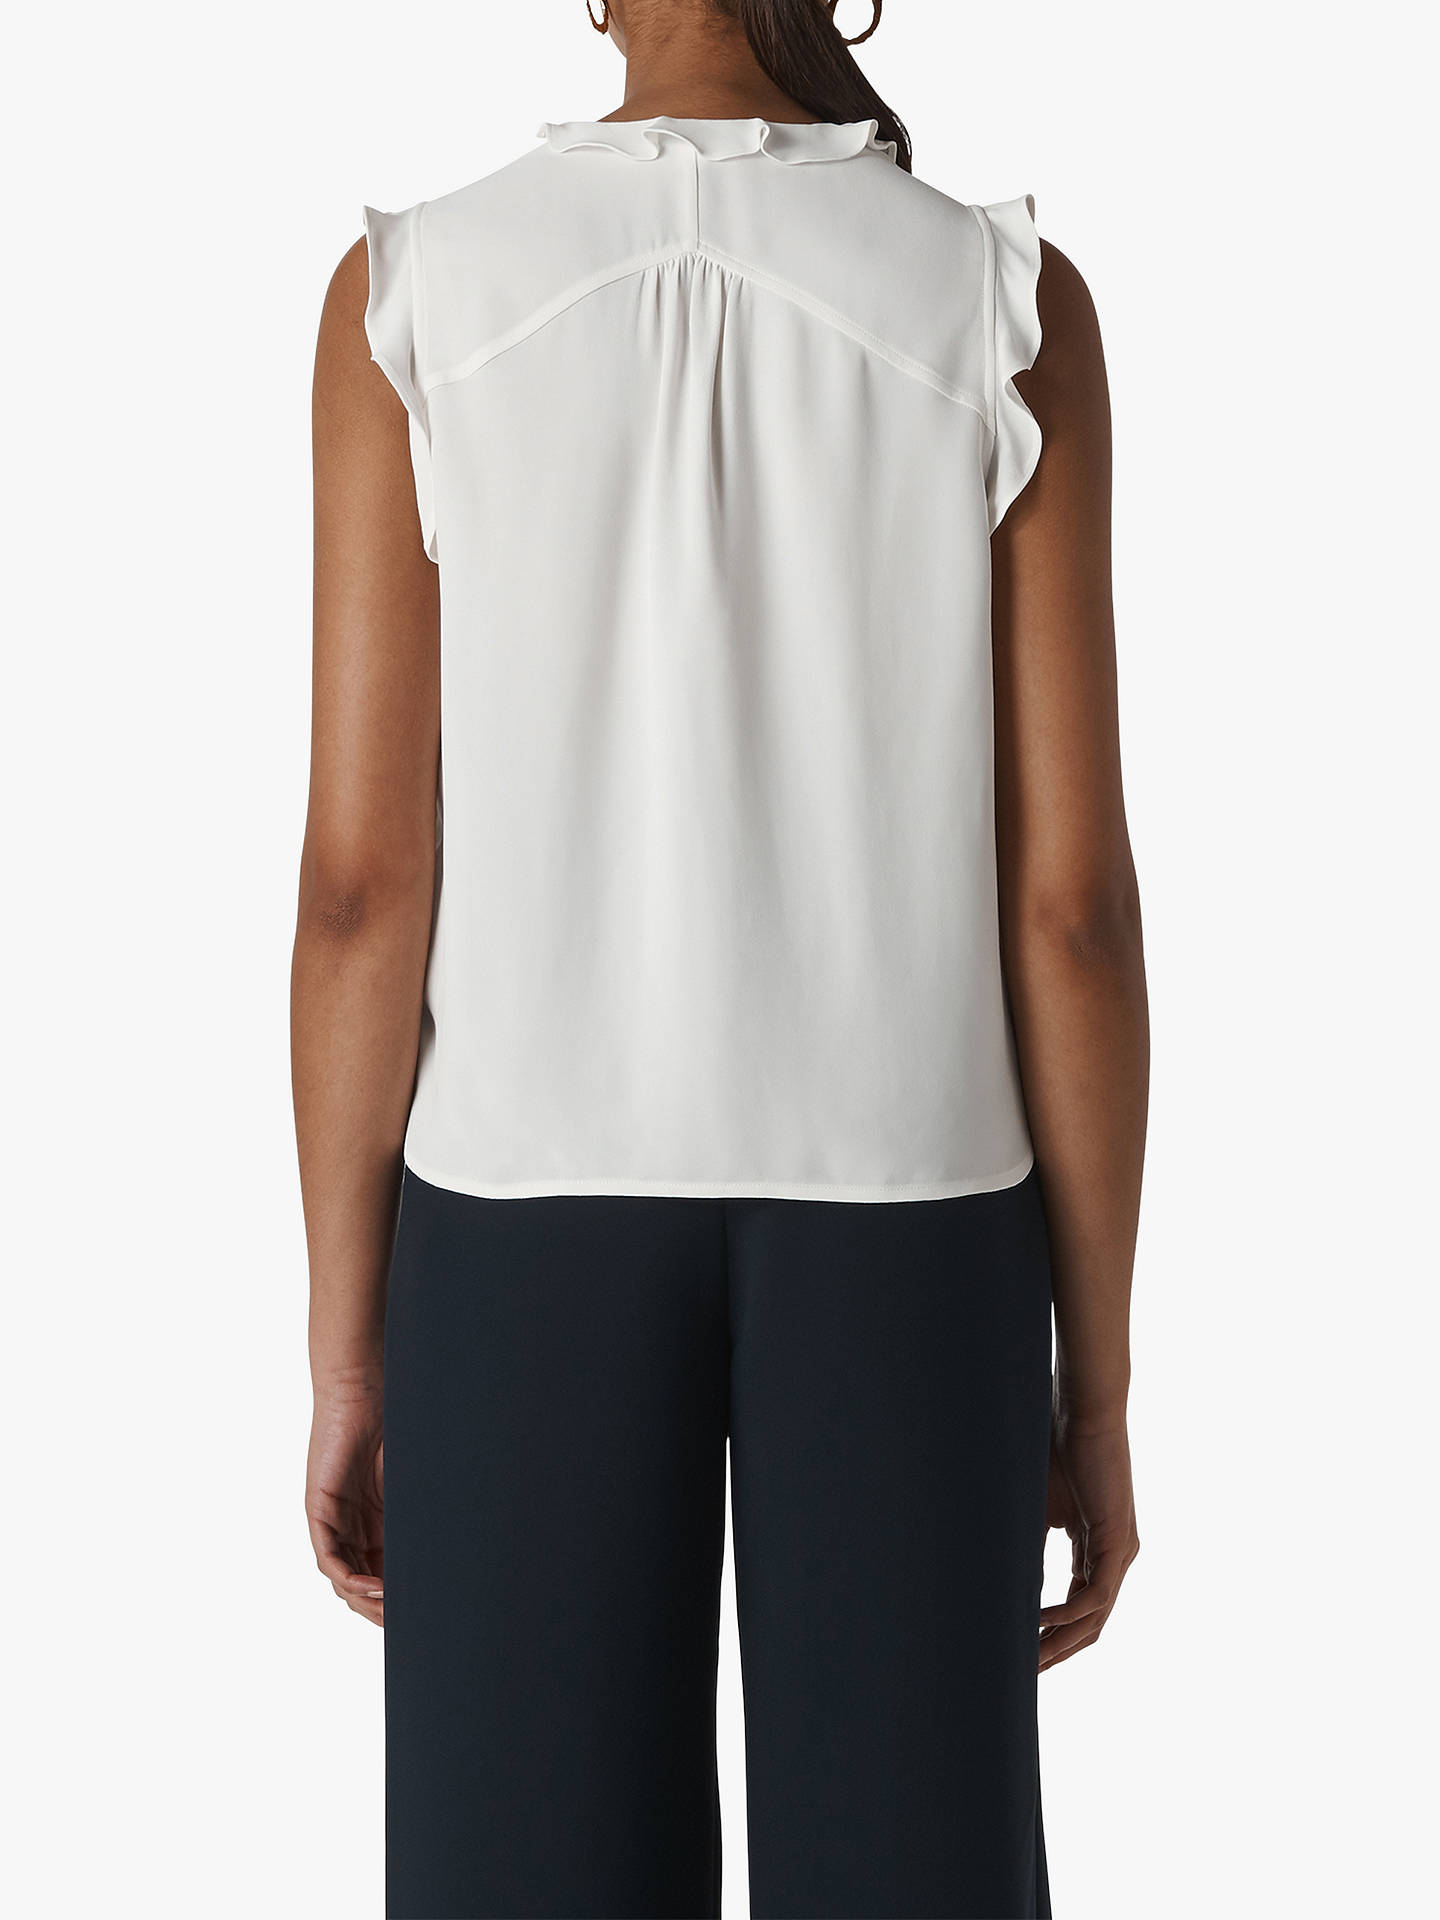 a89f0af85 ... Buy Whistles Emily Frill Detail Top, Ivory, 12 Online at johnlewis.com  ...